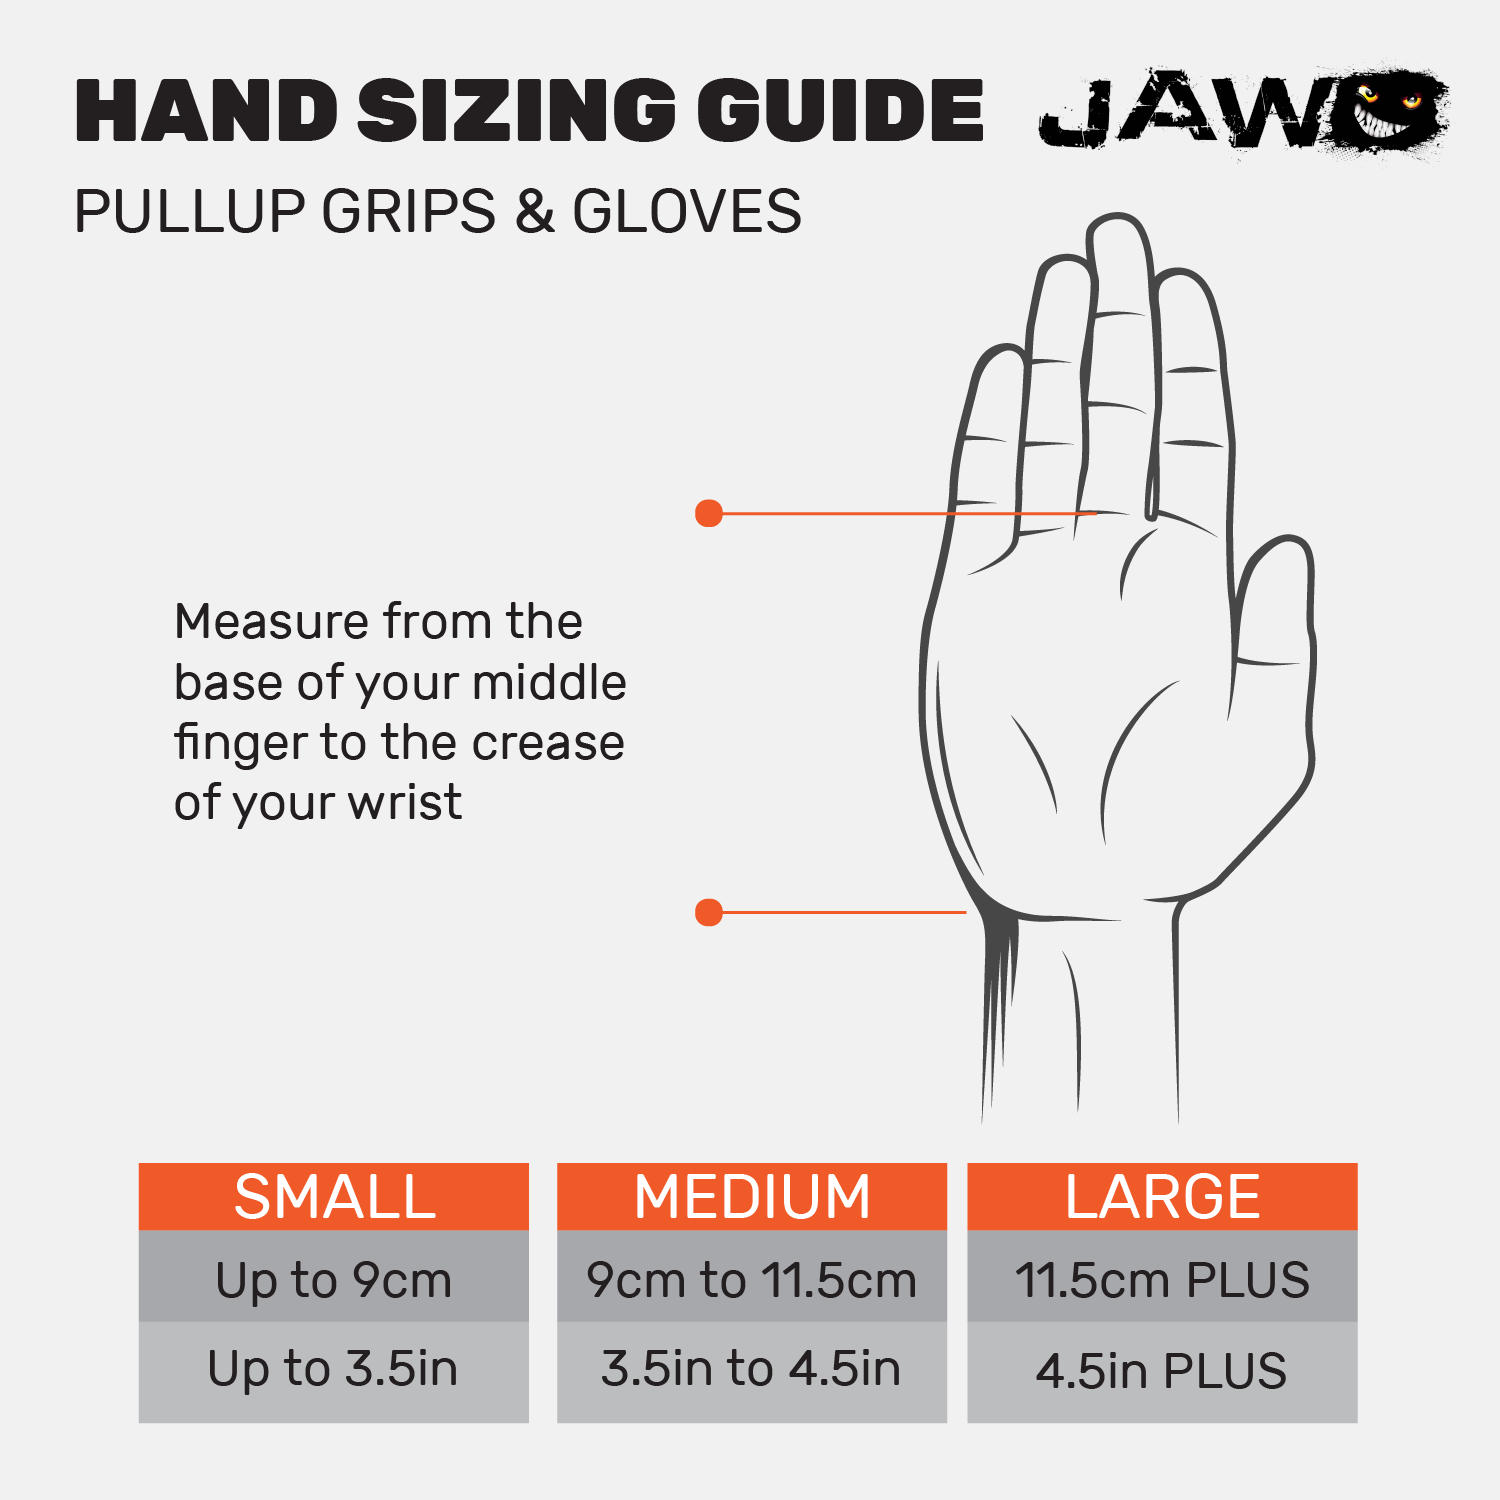 jaw sizing charts will ensure you buy the right size product